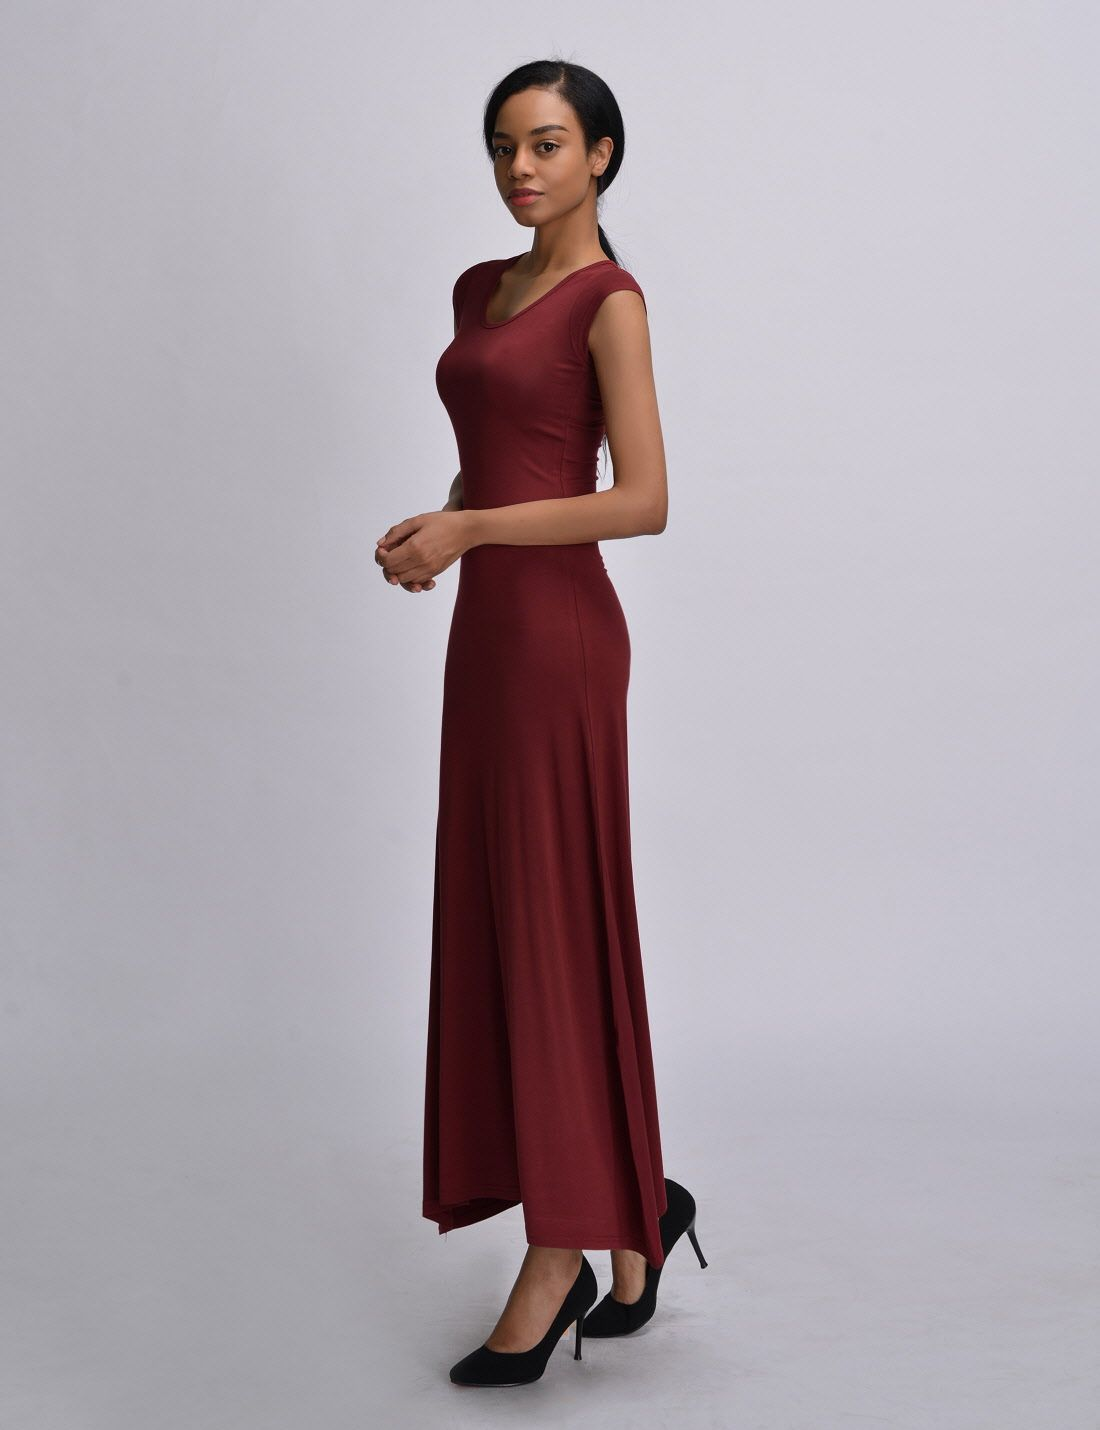 Wld04271 fitted soft stretchy cap sleeve casual one